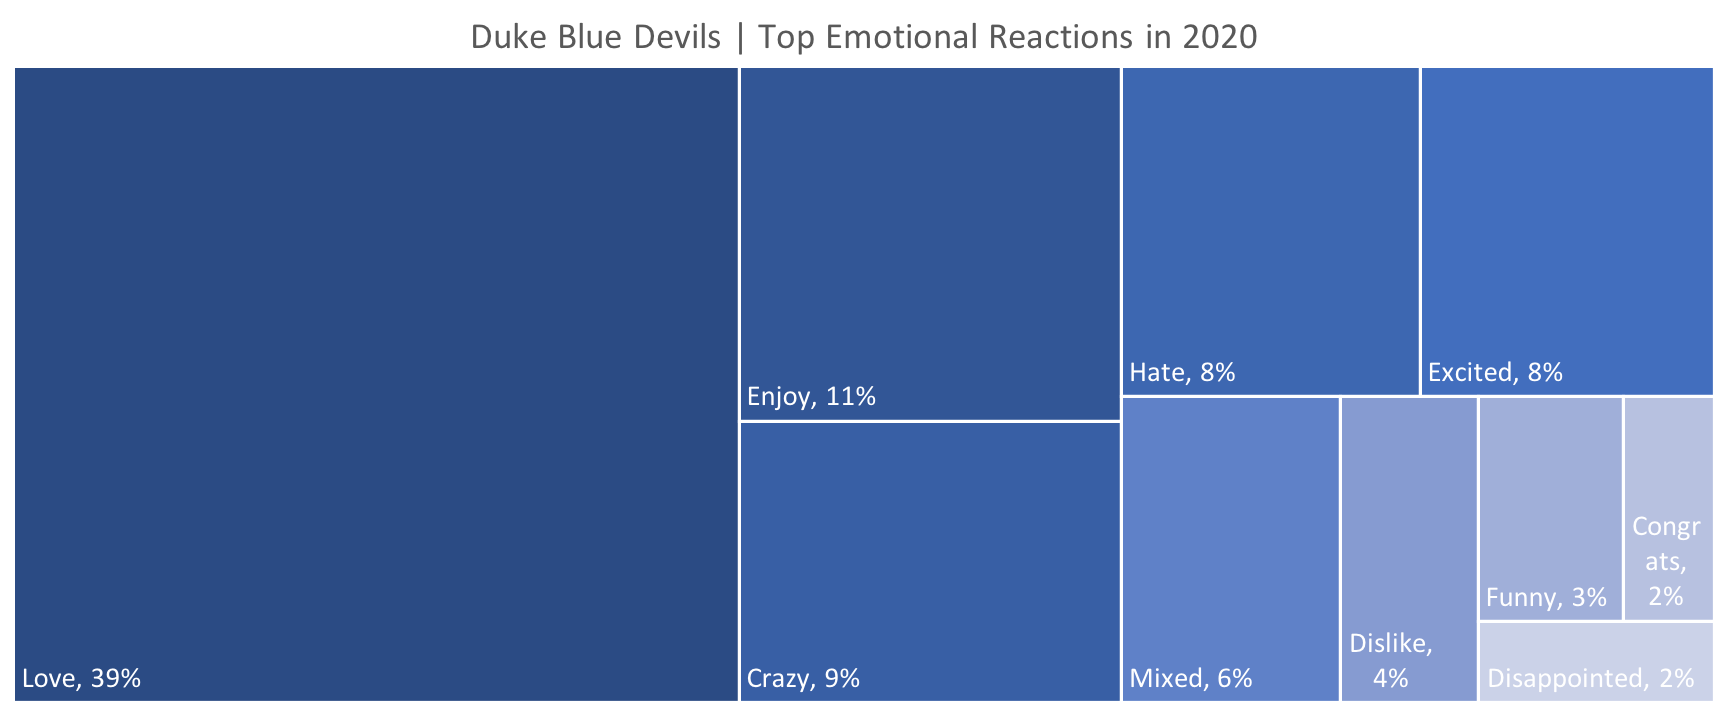 Source: Canvs Explore, Tweets driven by the Duke Blue Devils in 2020